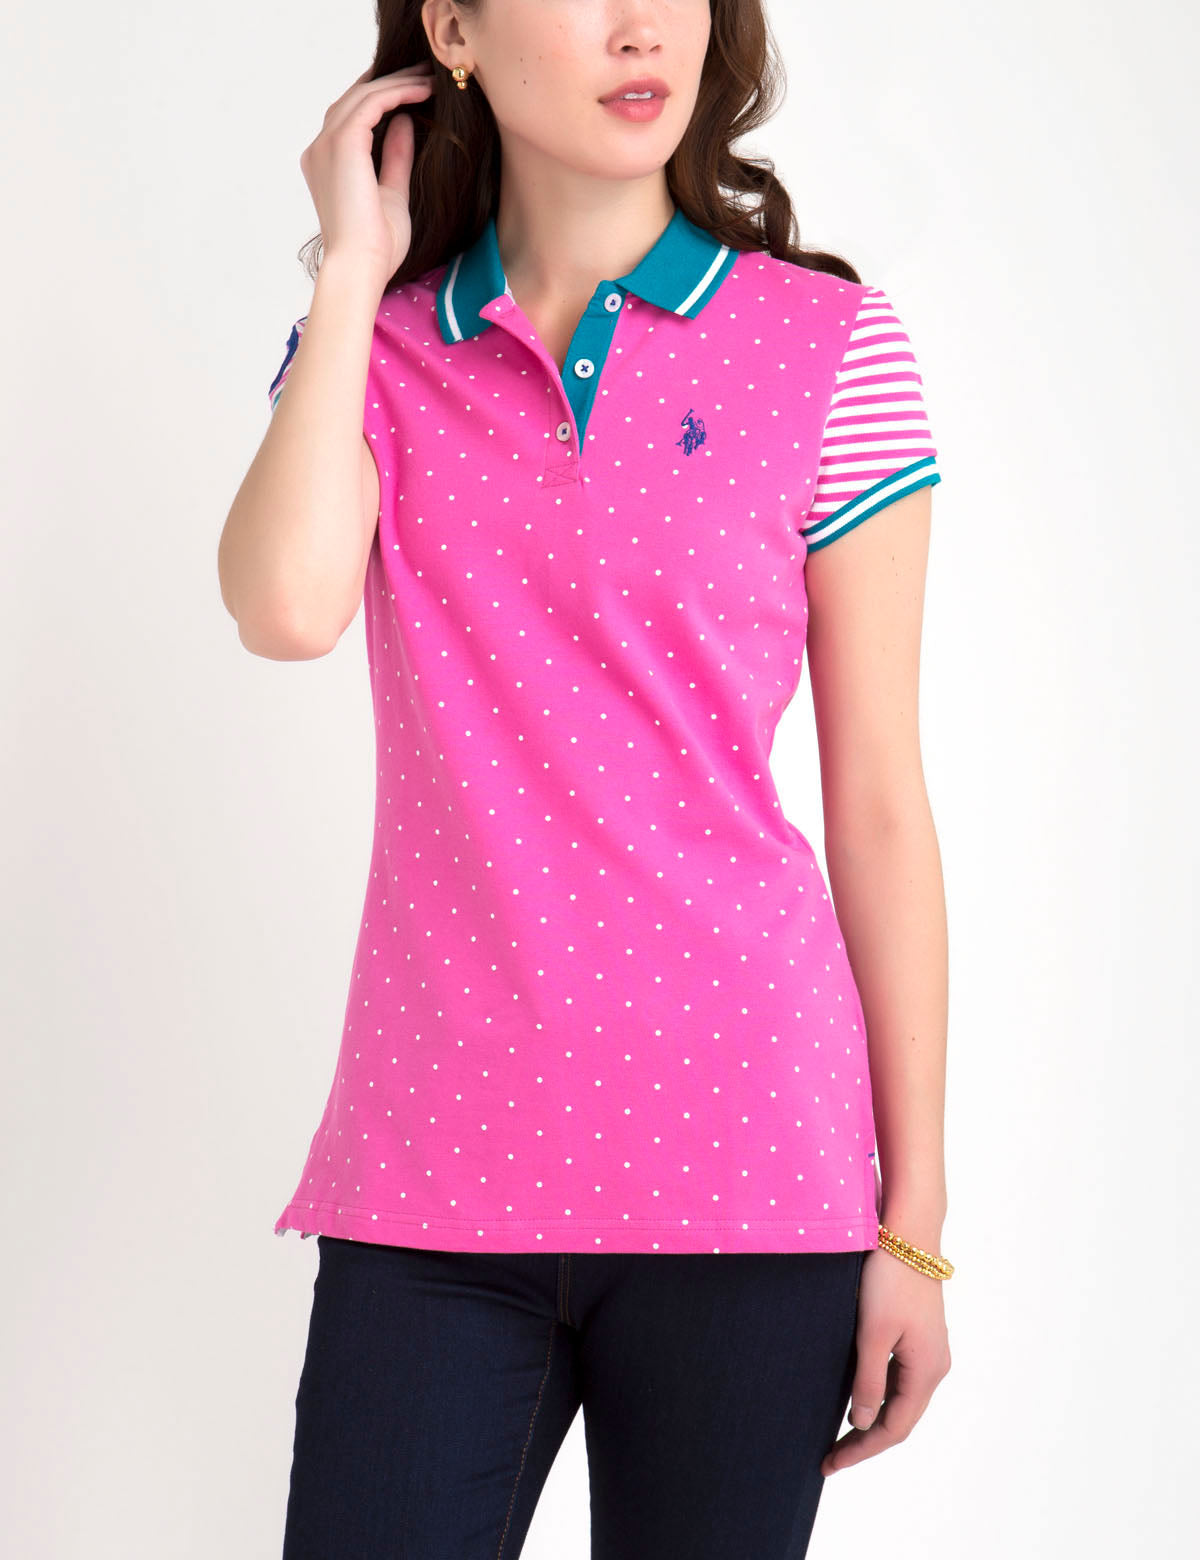 PREMIUM DOT STRIPE MIX POLO SHIRT - U.S. Polo Assn.